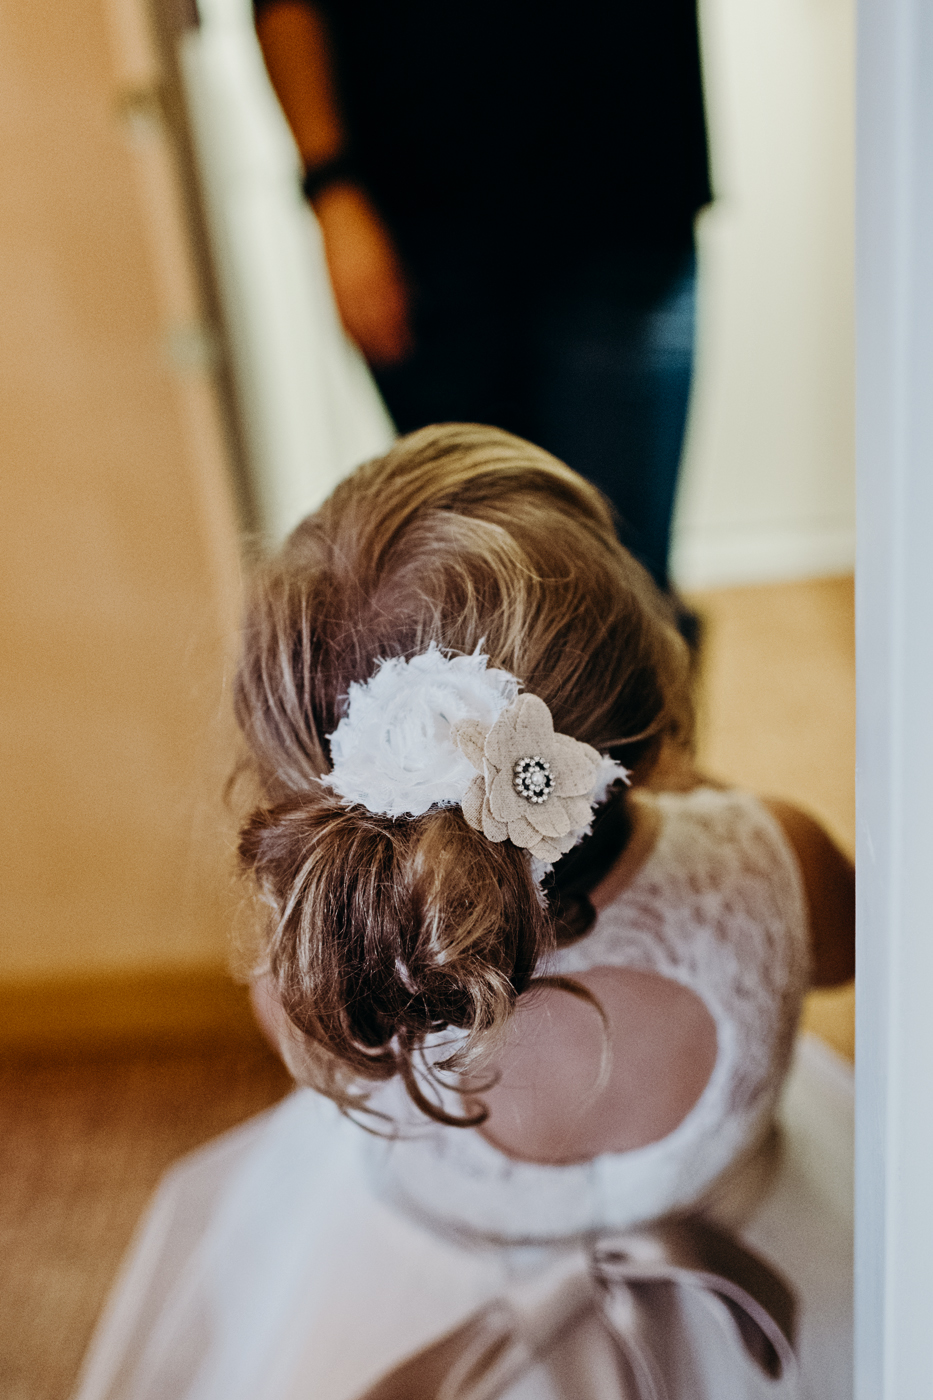 Flower girl's burlap flower hair tie